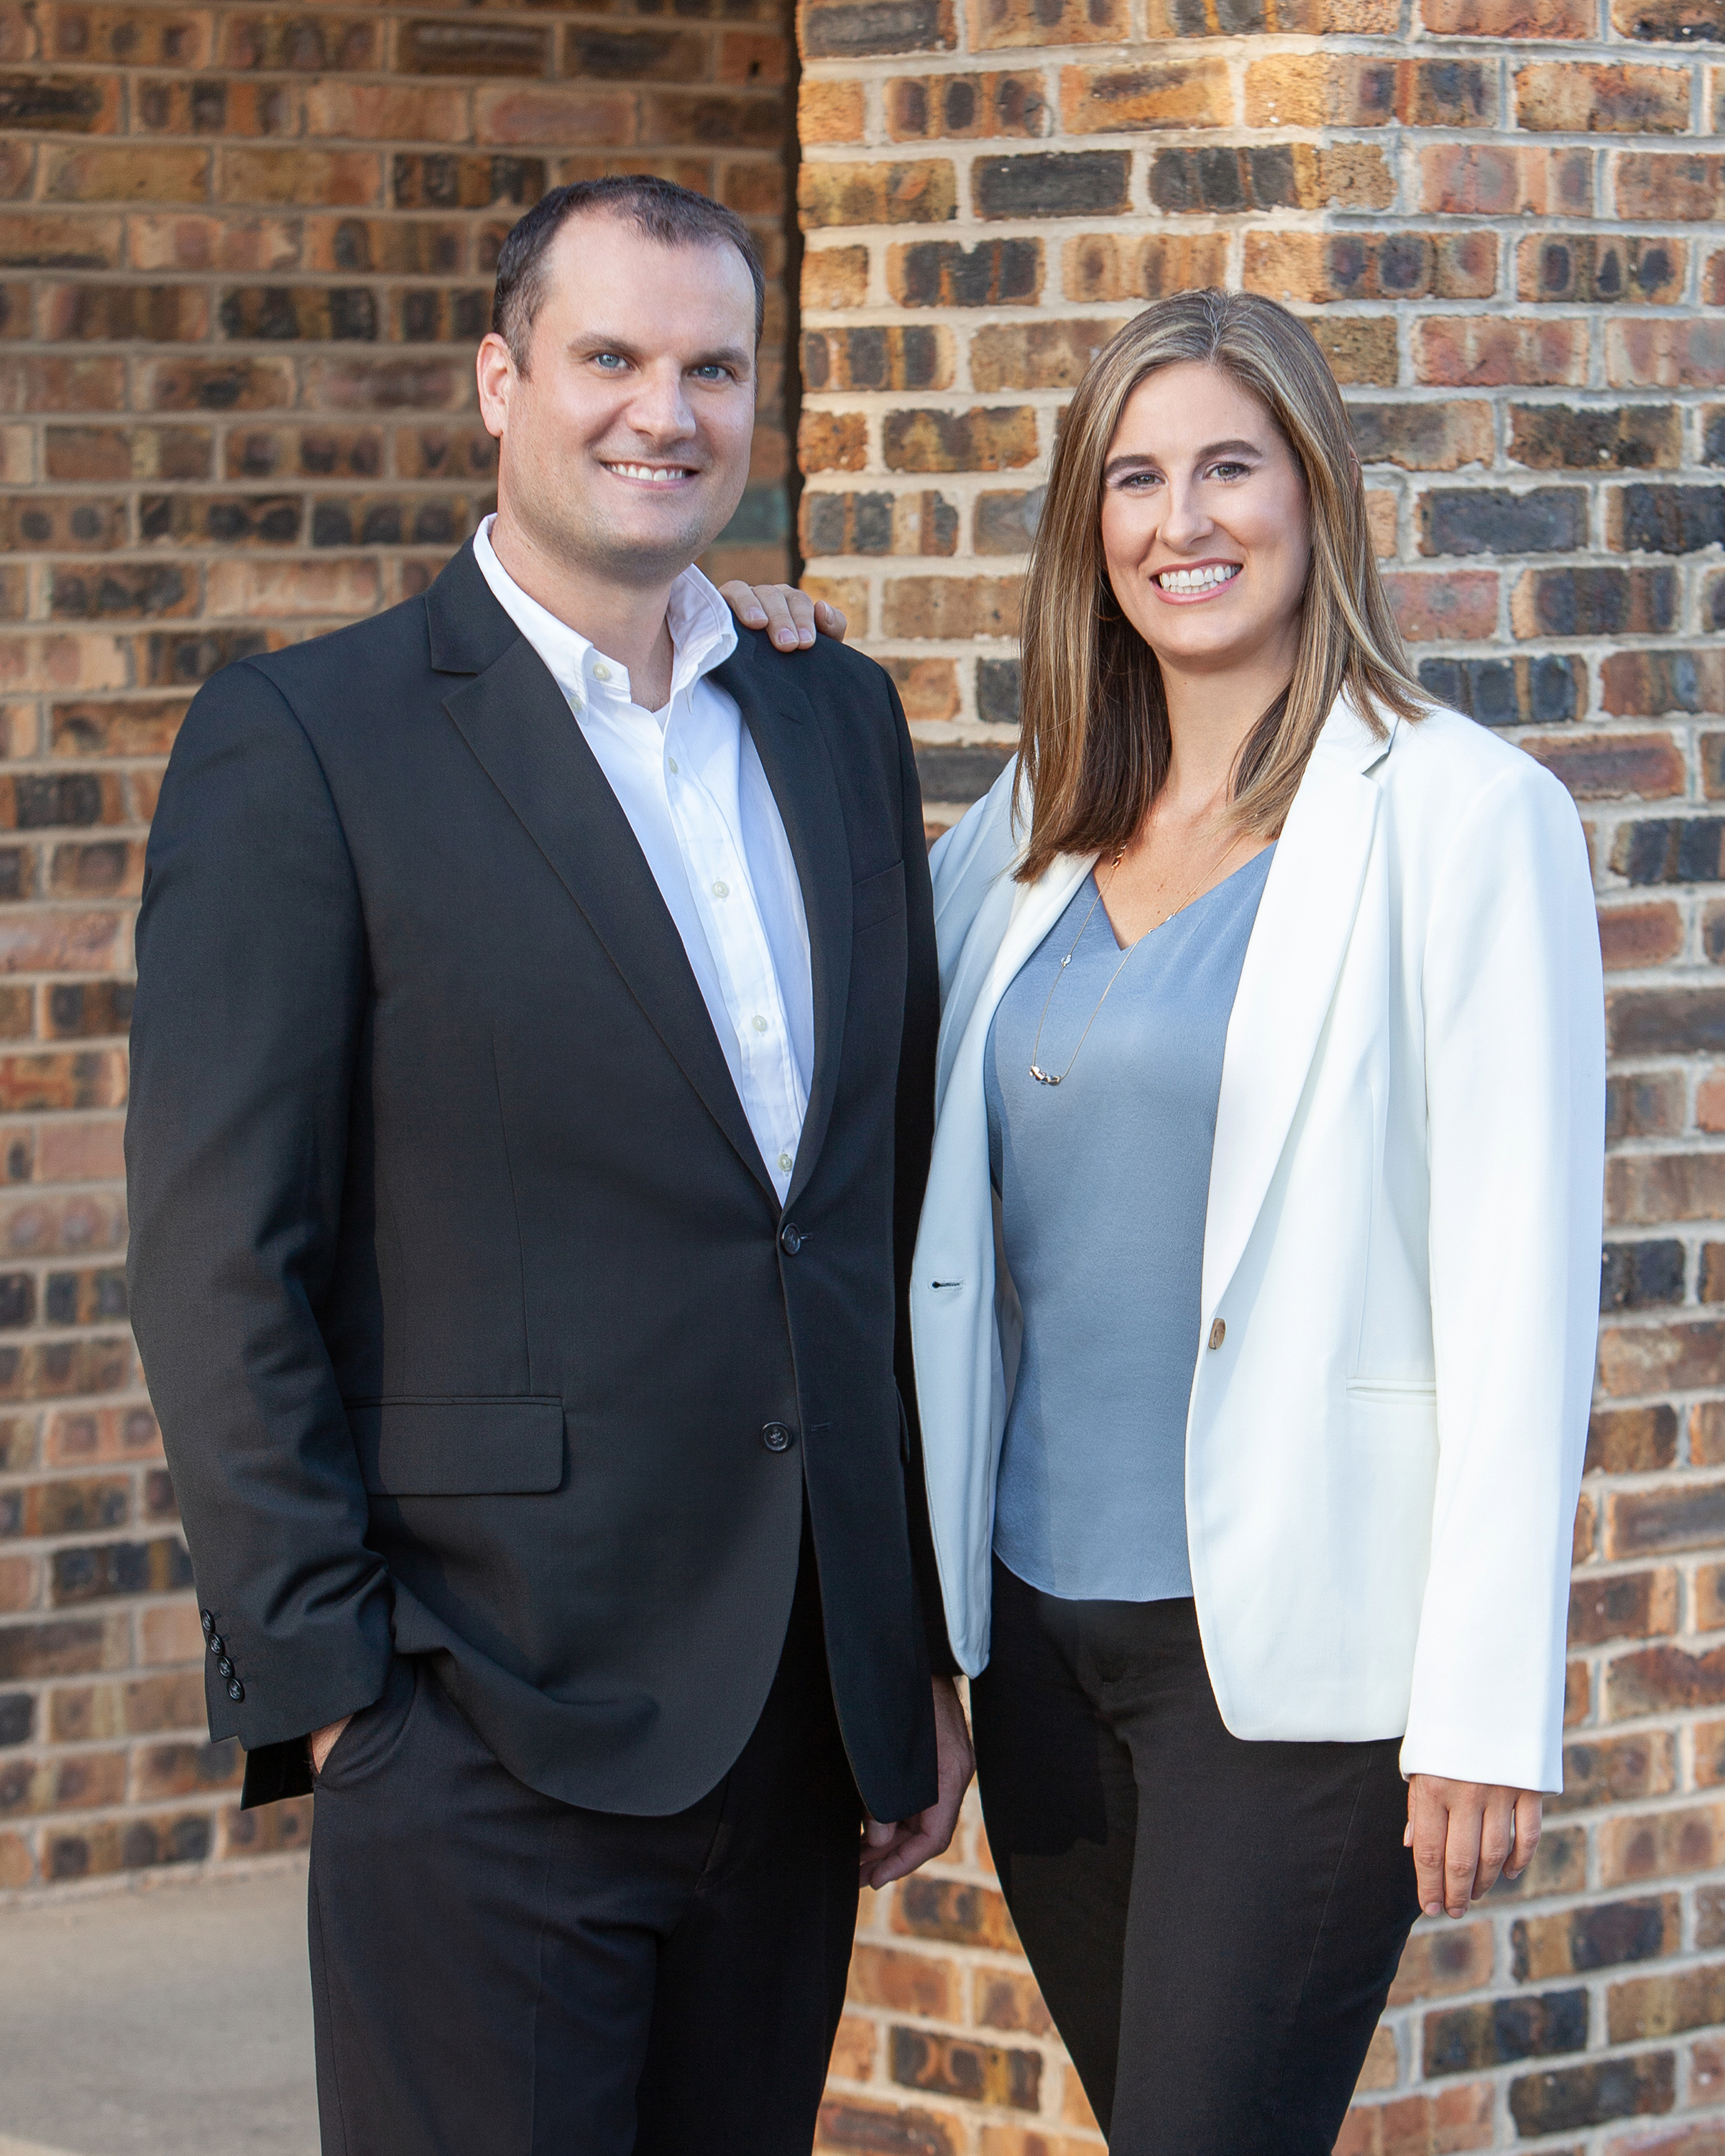 Andrew and Diana Friess - Owners of Friess Financial, Inc.